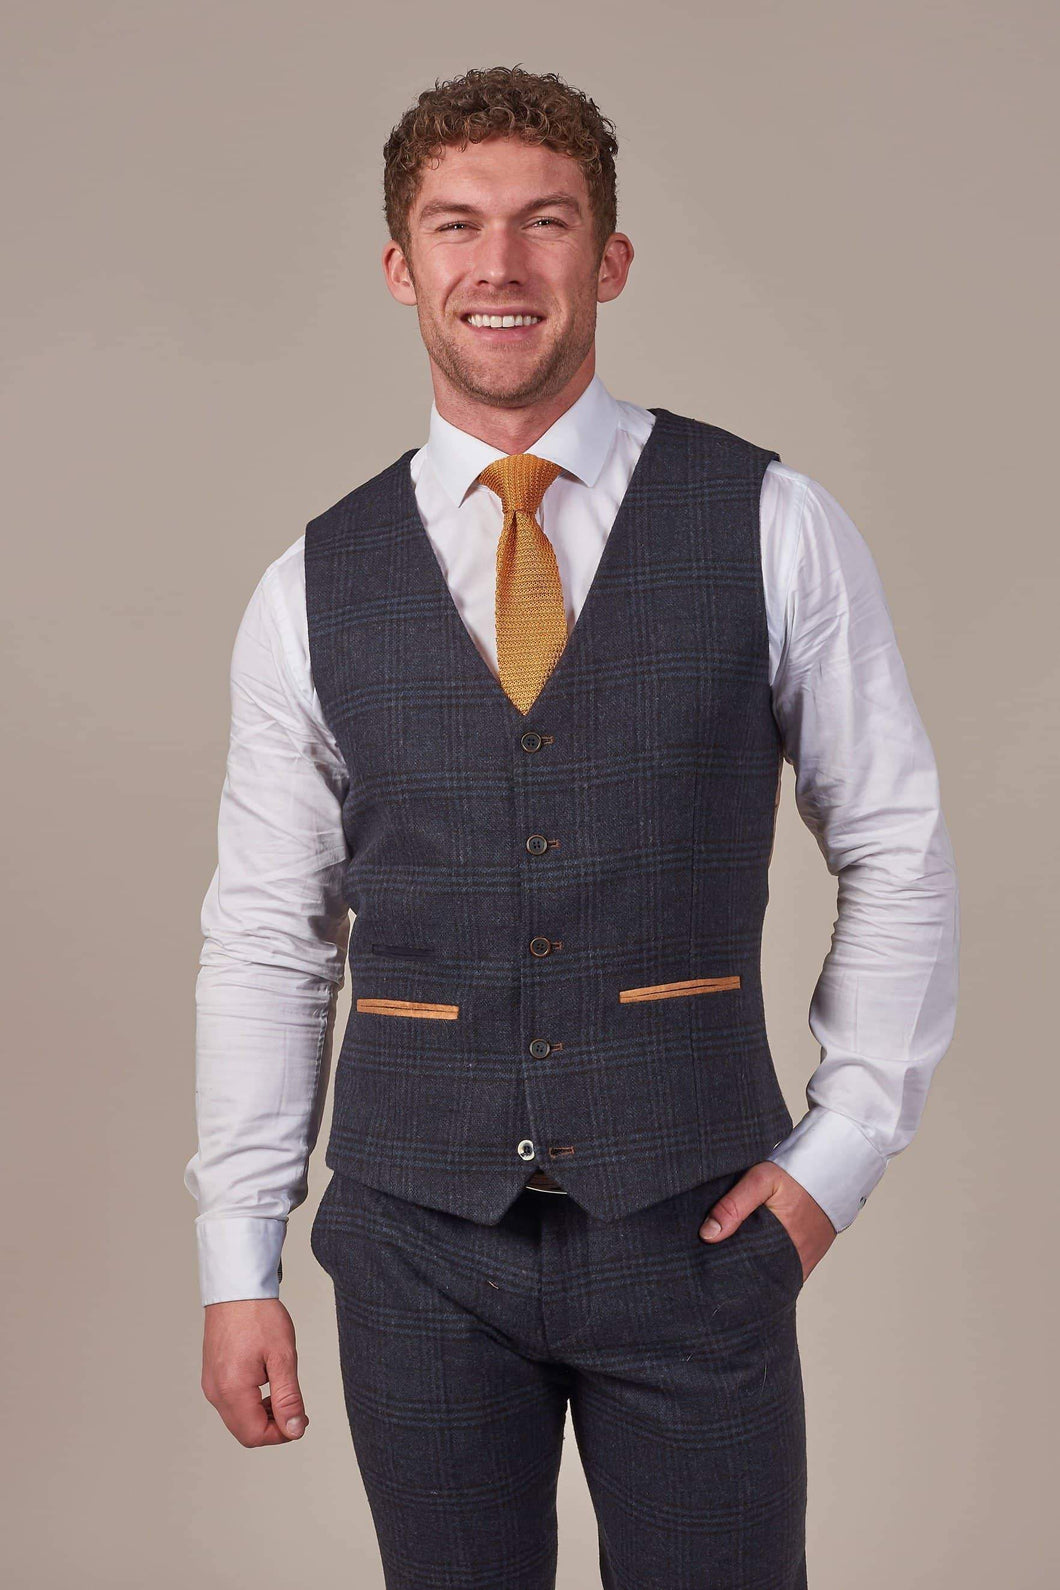 Fratelli Navy Check Tweed Style Waistcoat With Tan Trim